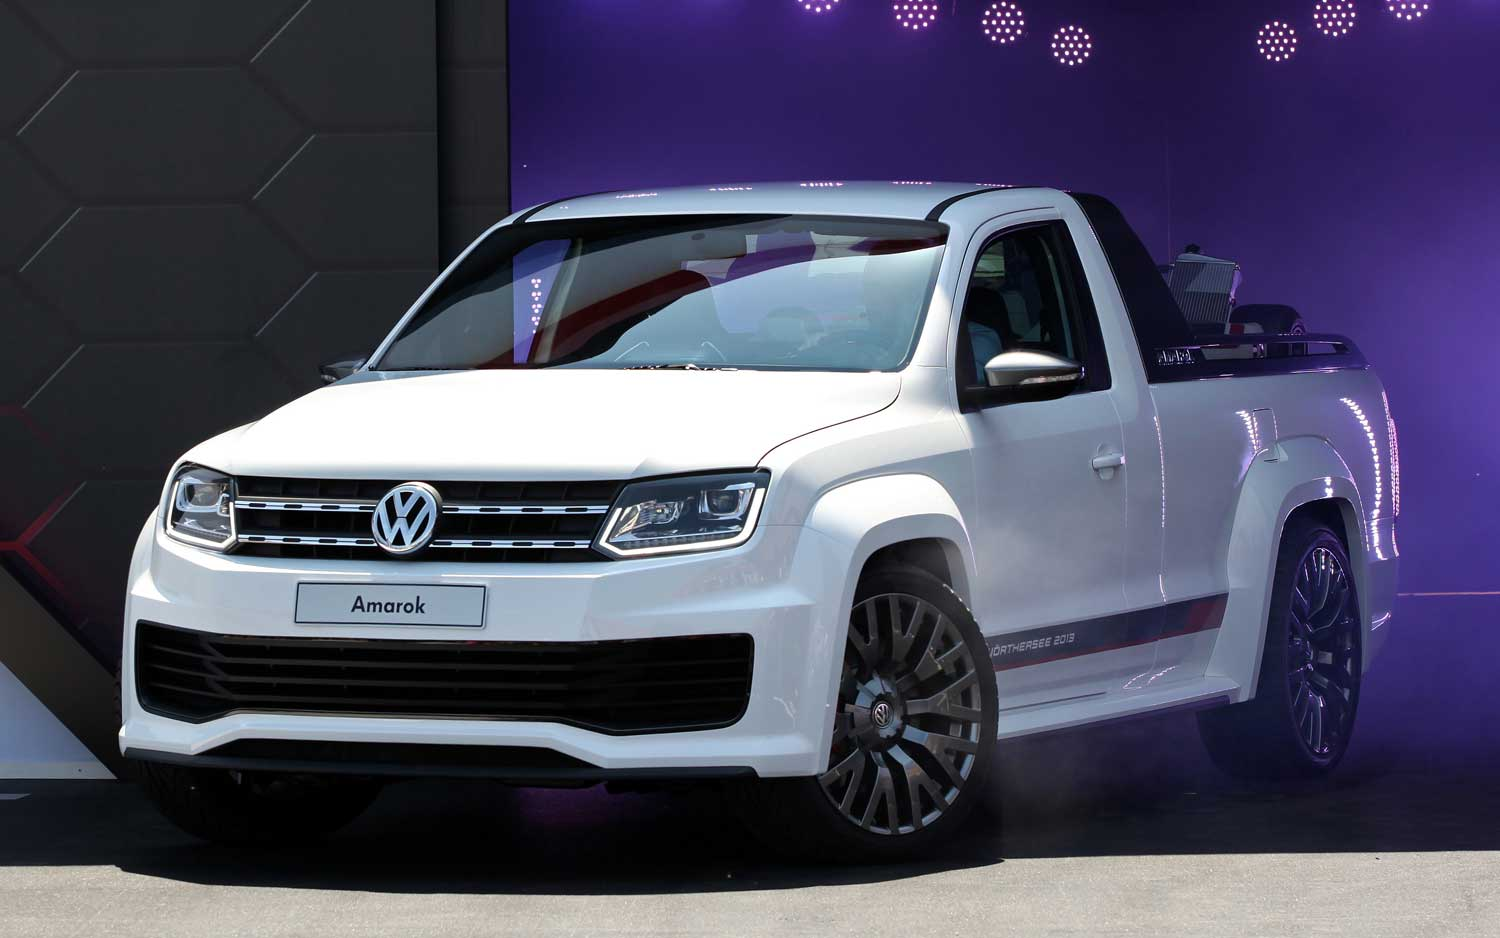 Track Ready Volkswagen Amarok Concept Debuts At Worthersee Motor Trend